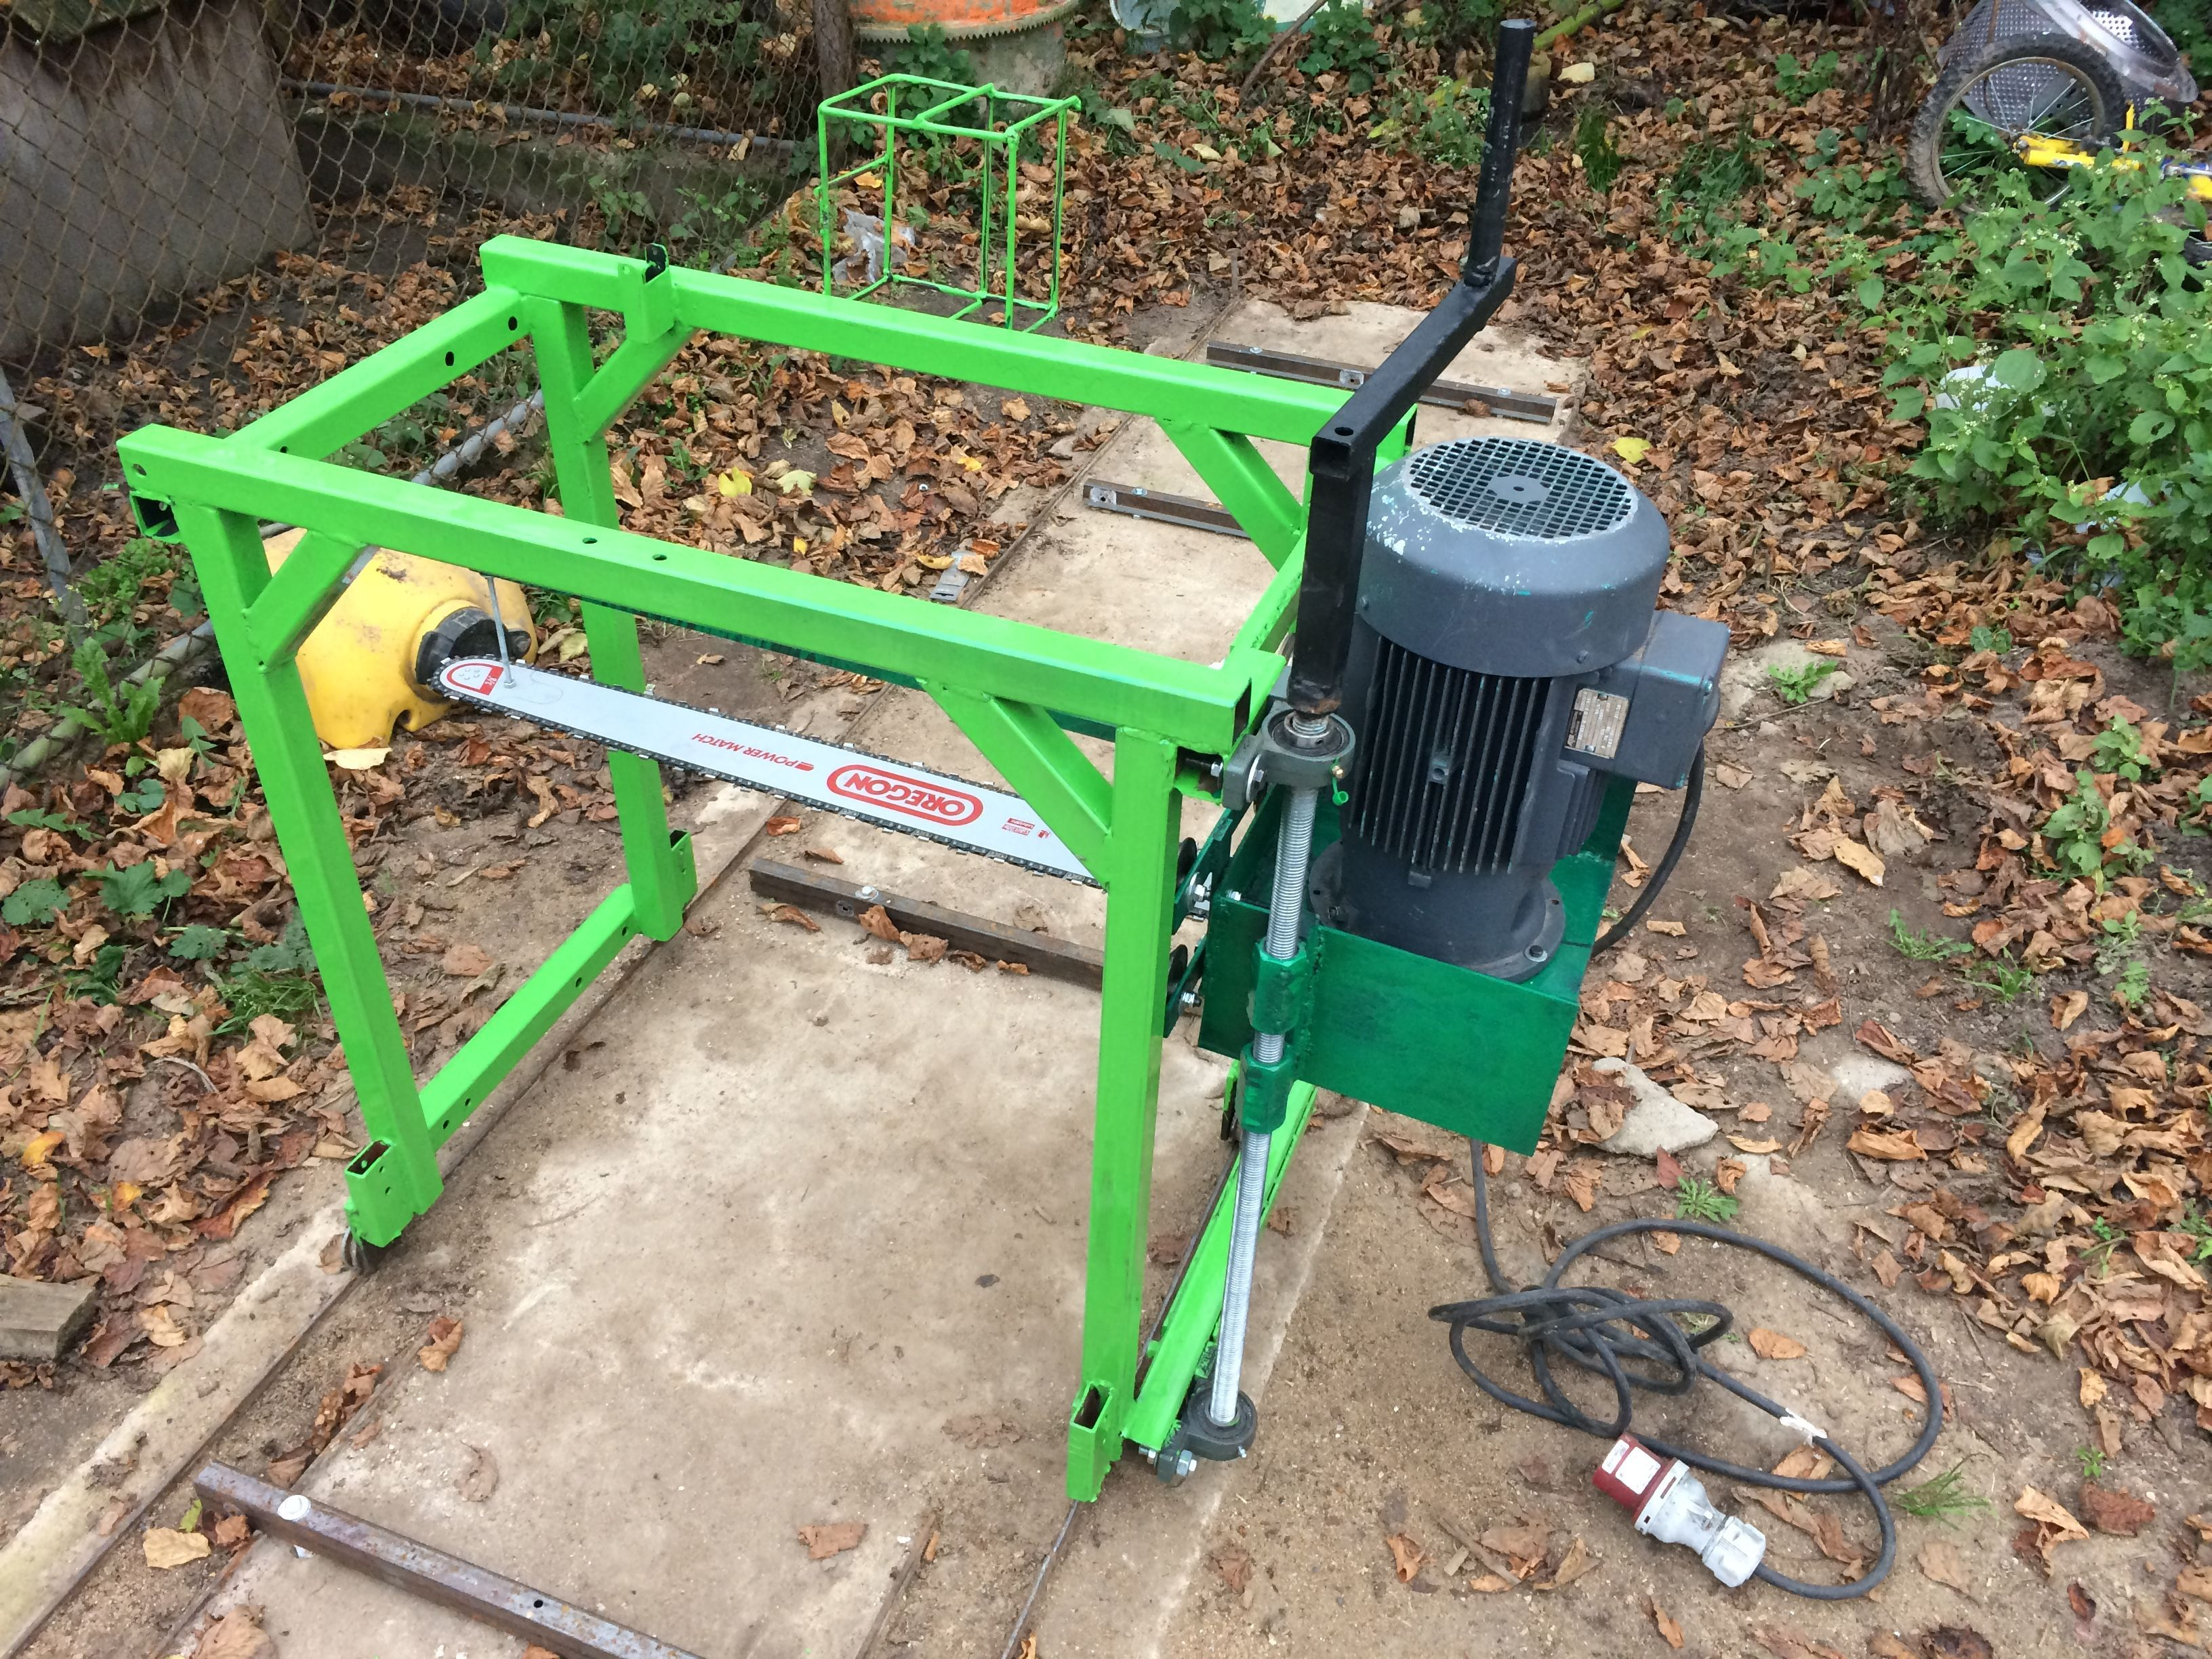 Plans to make a hydraulic chainsaw